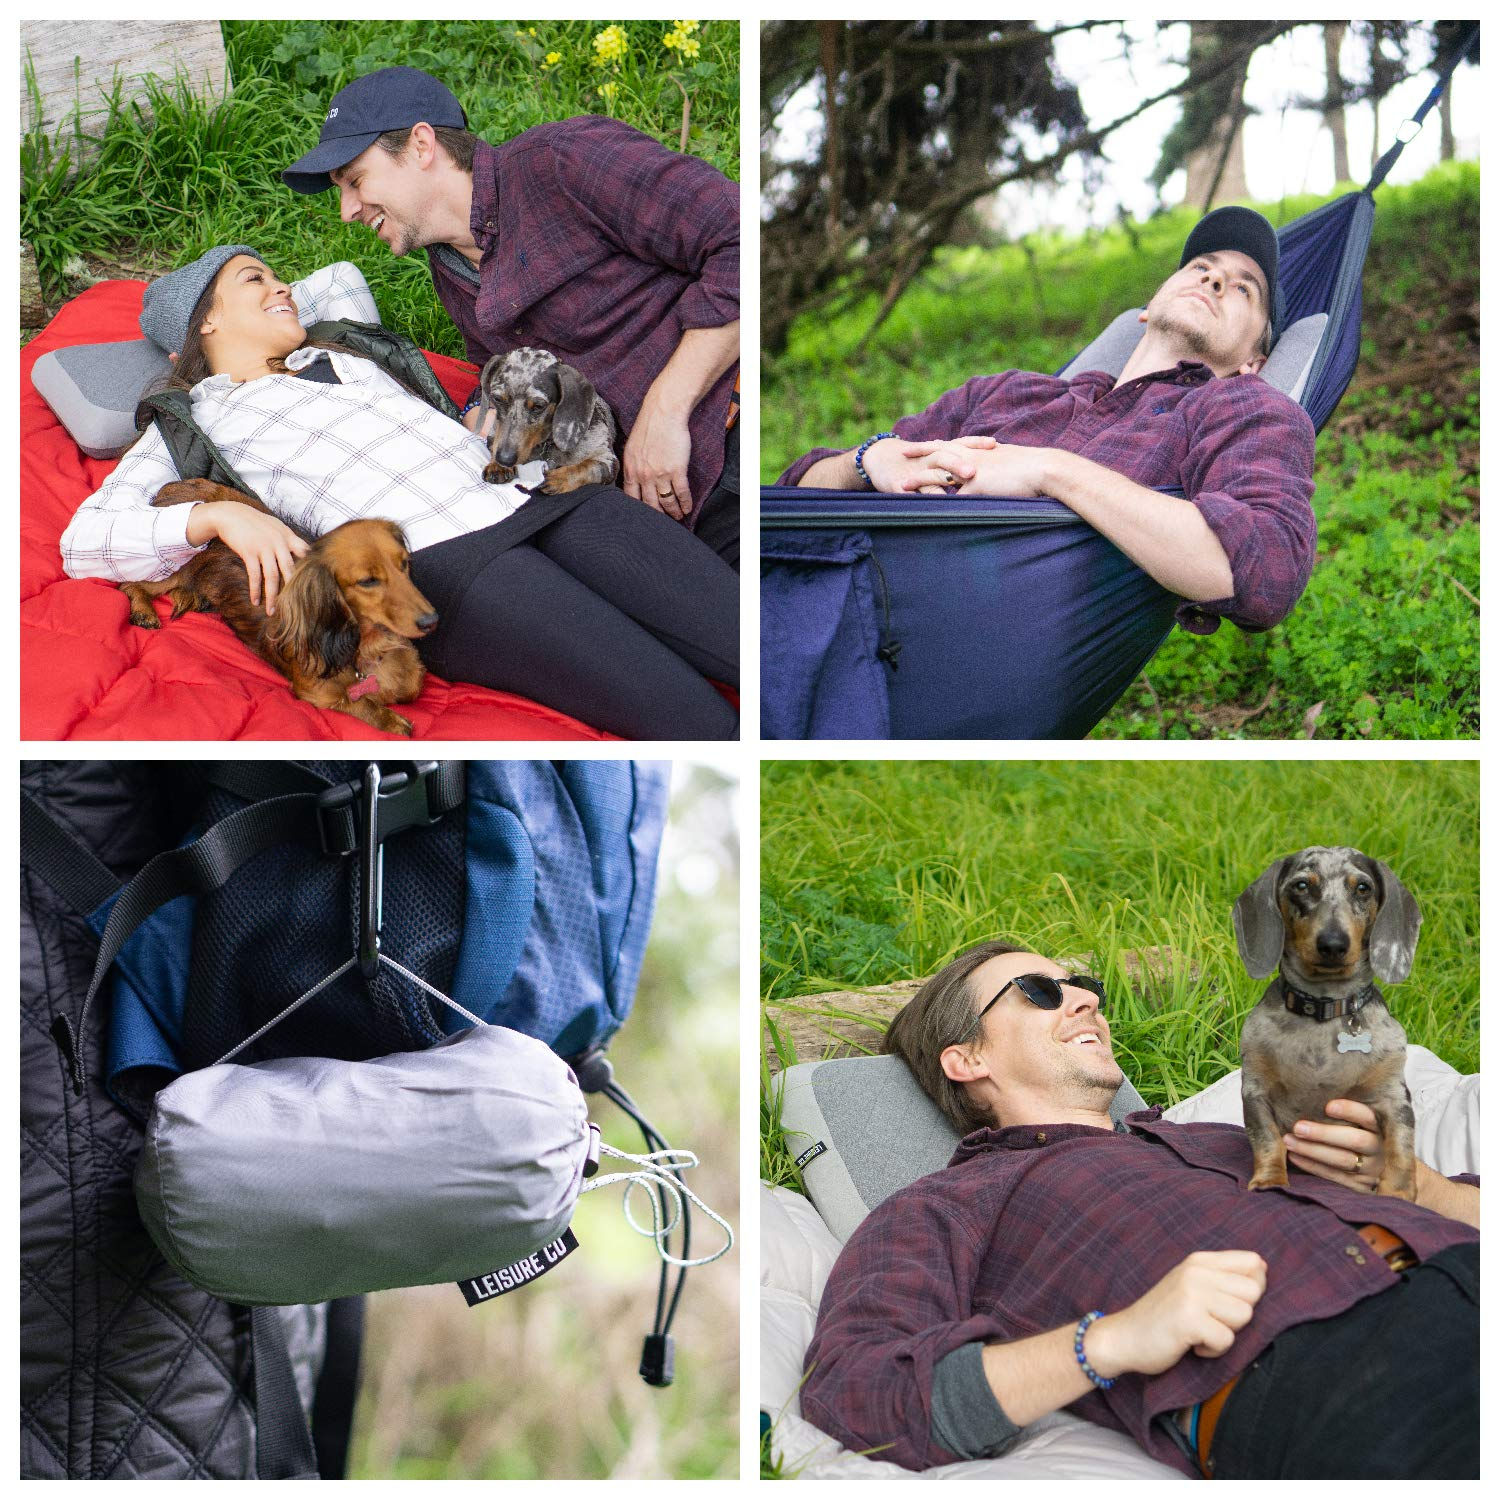 Perfect Compact Inflatable Pillow for Backpacking Back Lumbar Support Leisure Co Ultra-Portable /& Ultralight Camping Pillow Travel Planes and More! Camp Trips